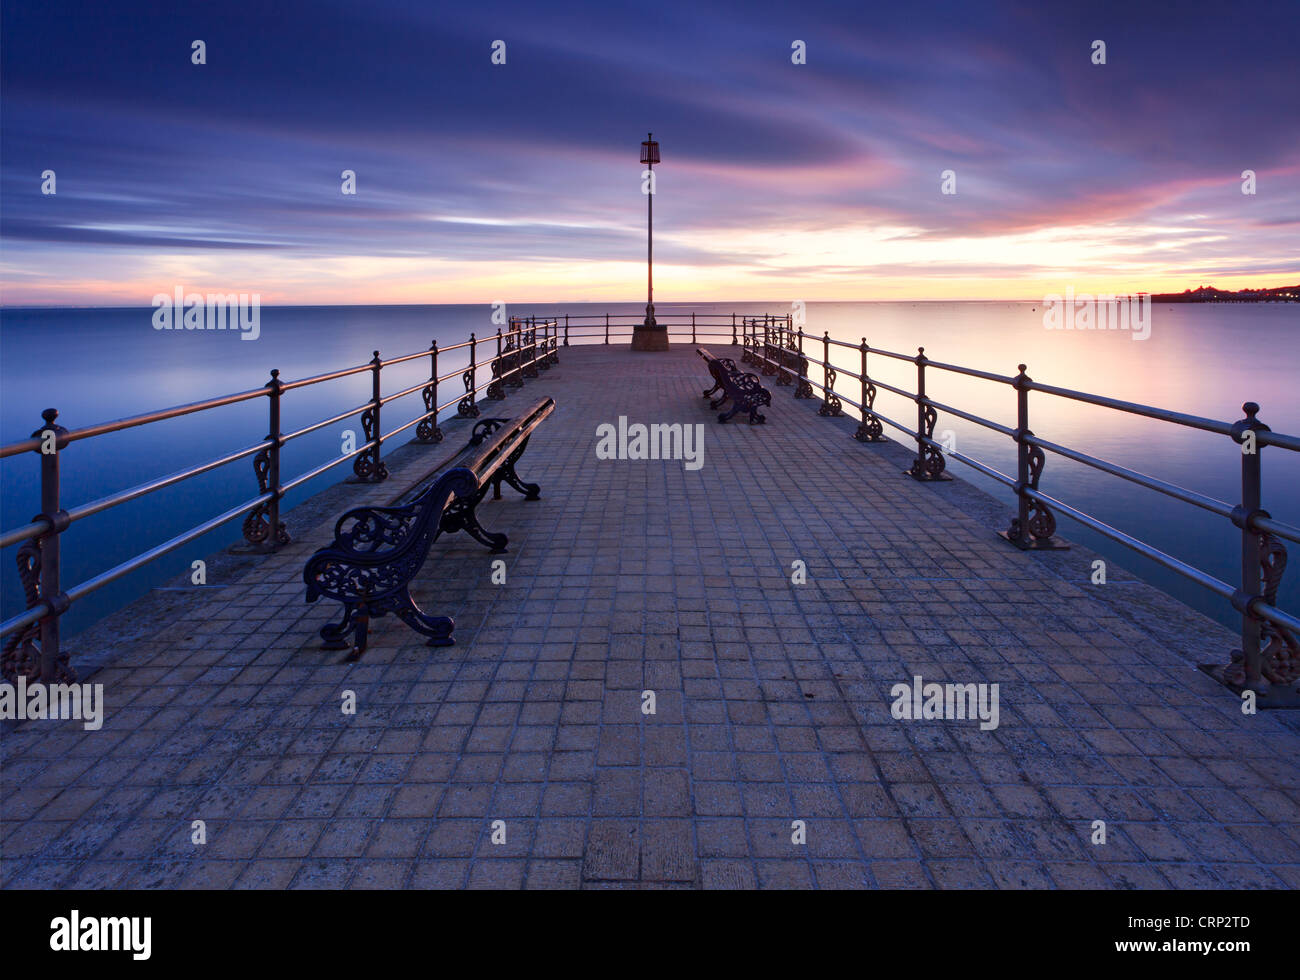 Sunrise over the Banjo shaped Jetty in Swanage Bay. - Stock Image